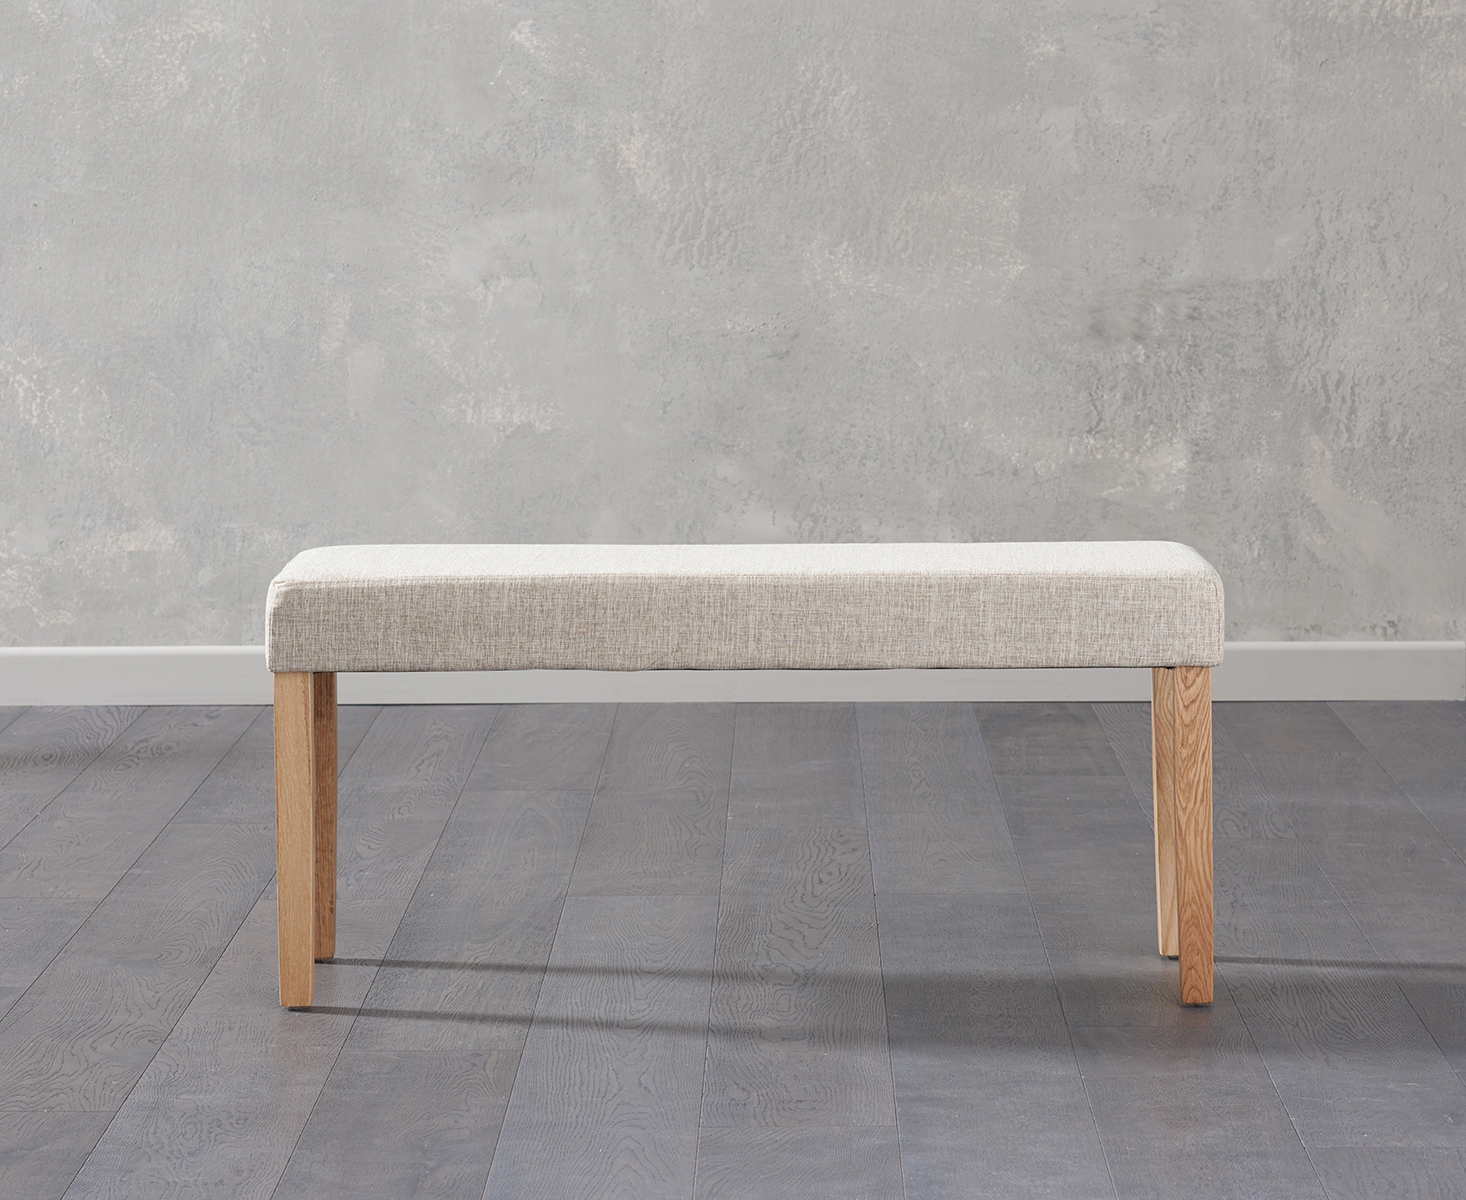 An image of Mia Small Cream Bench